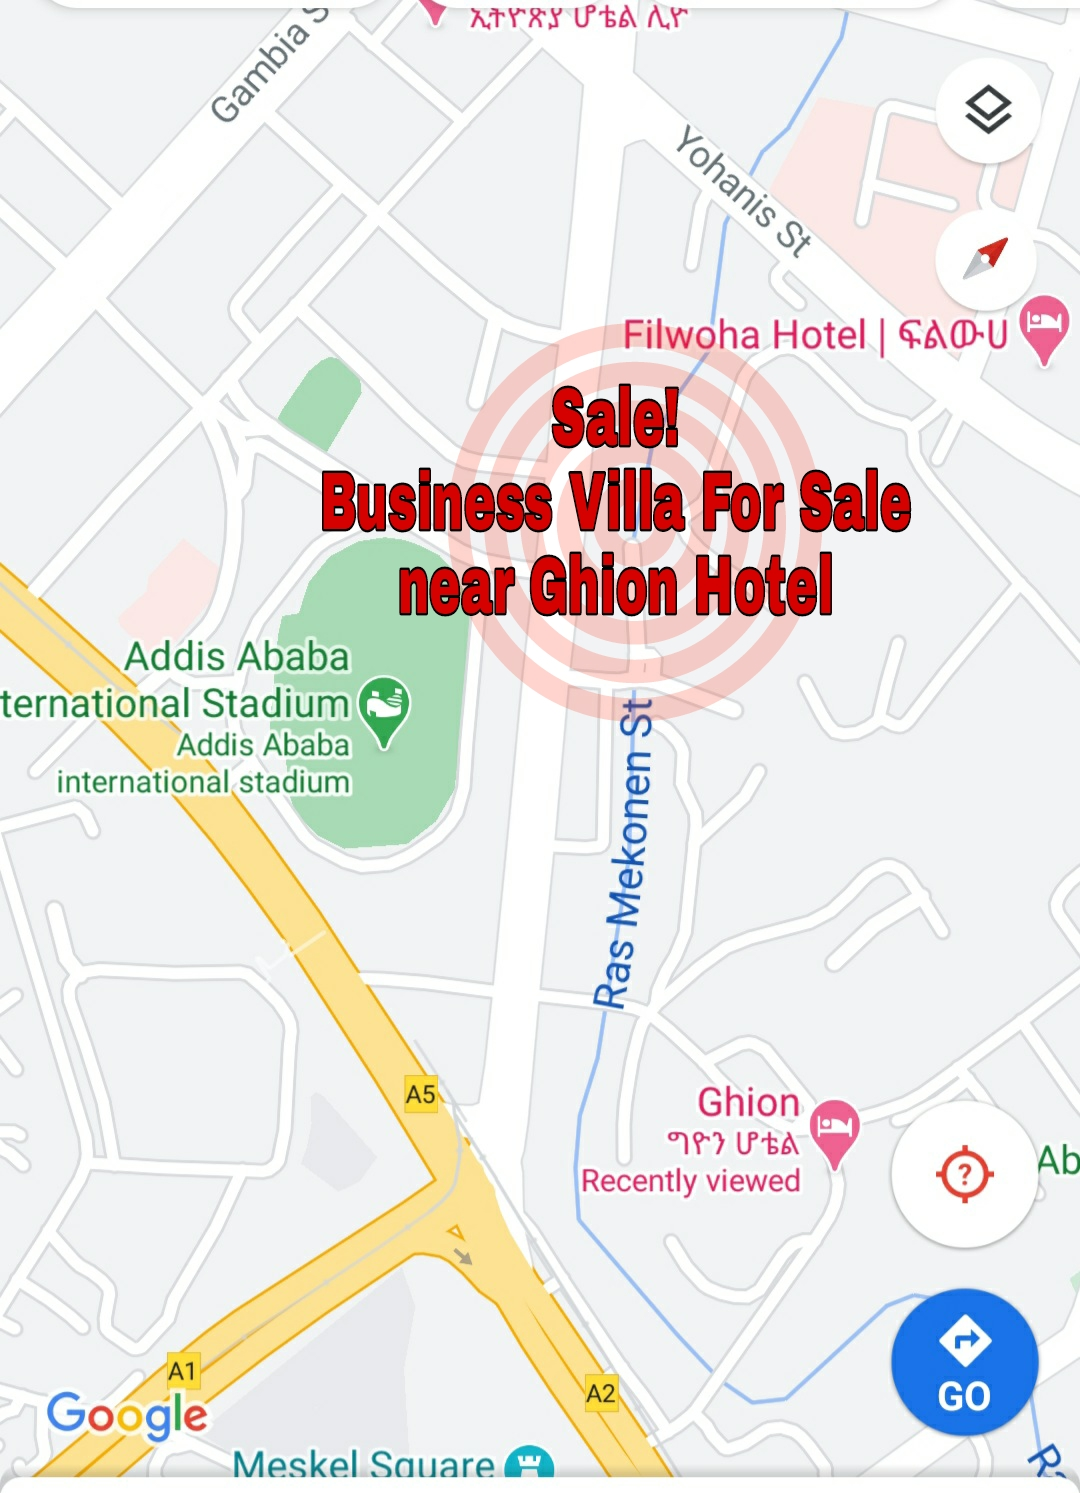 Sale!! Business Villa For Sale in Addis Ababa, Near Ghion Hotel